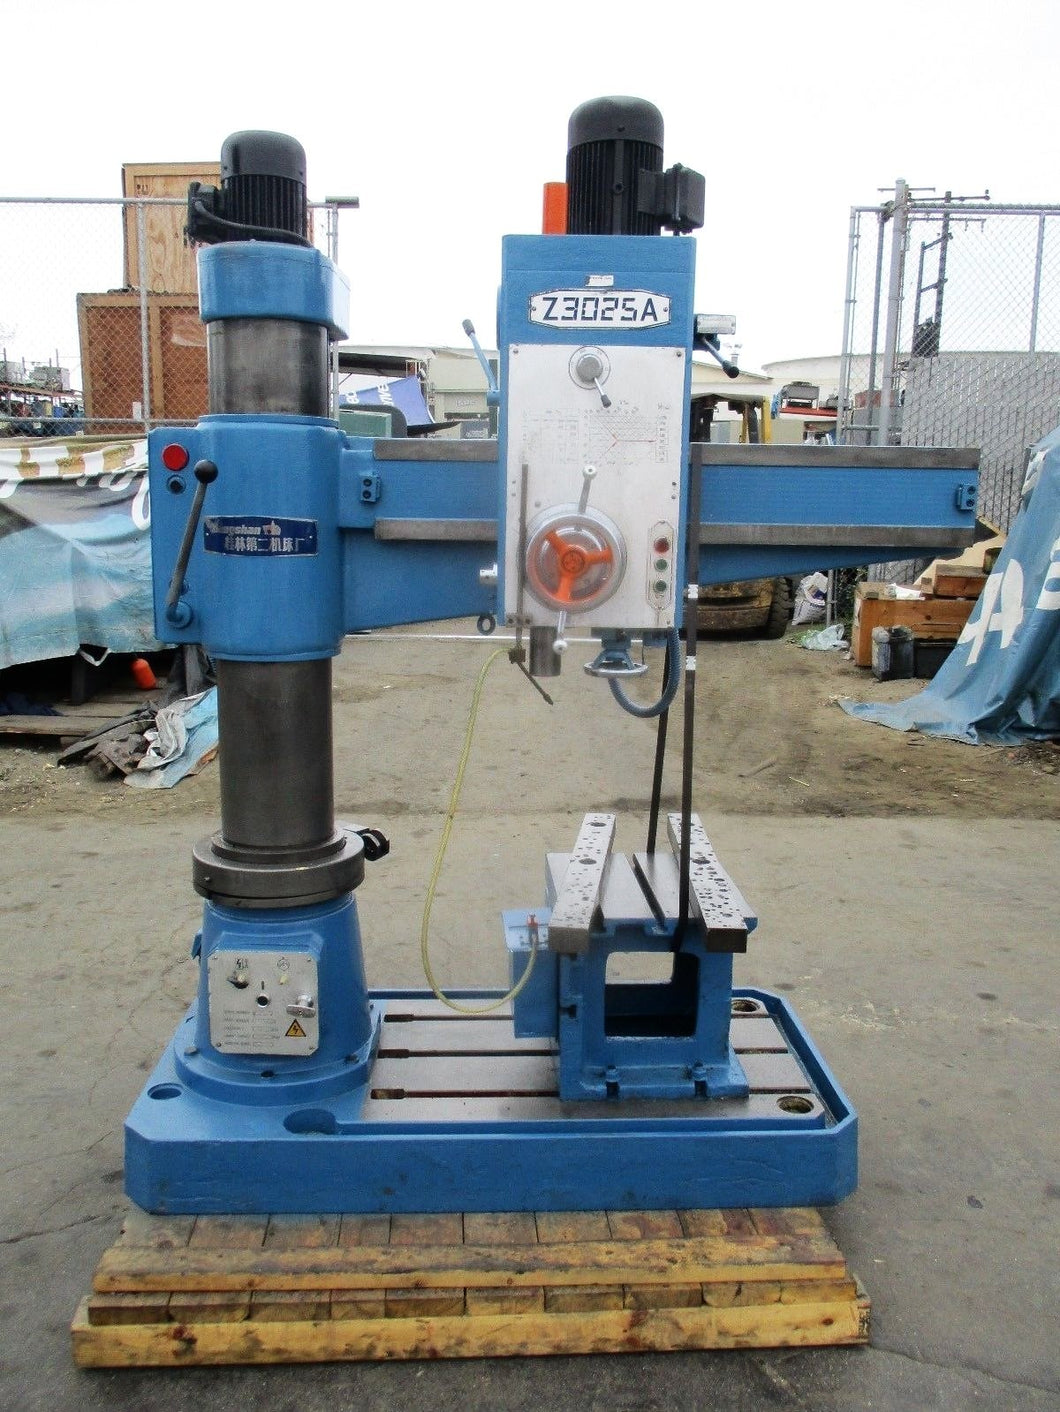 XIANGSHAN MODEL Z3025A RADIAL DRILL PRESS WITH TABLE